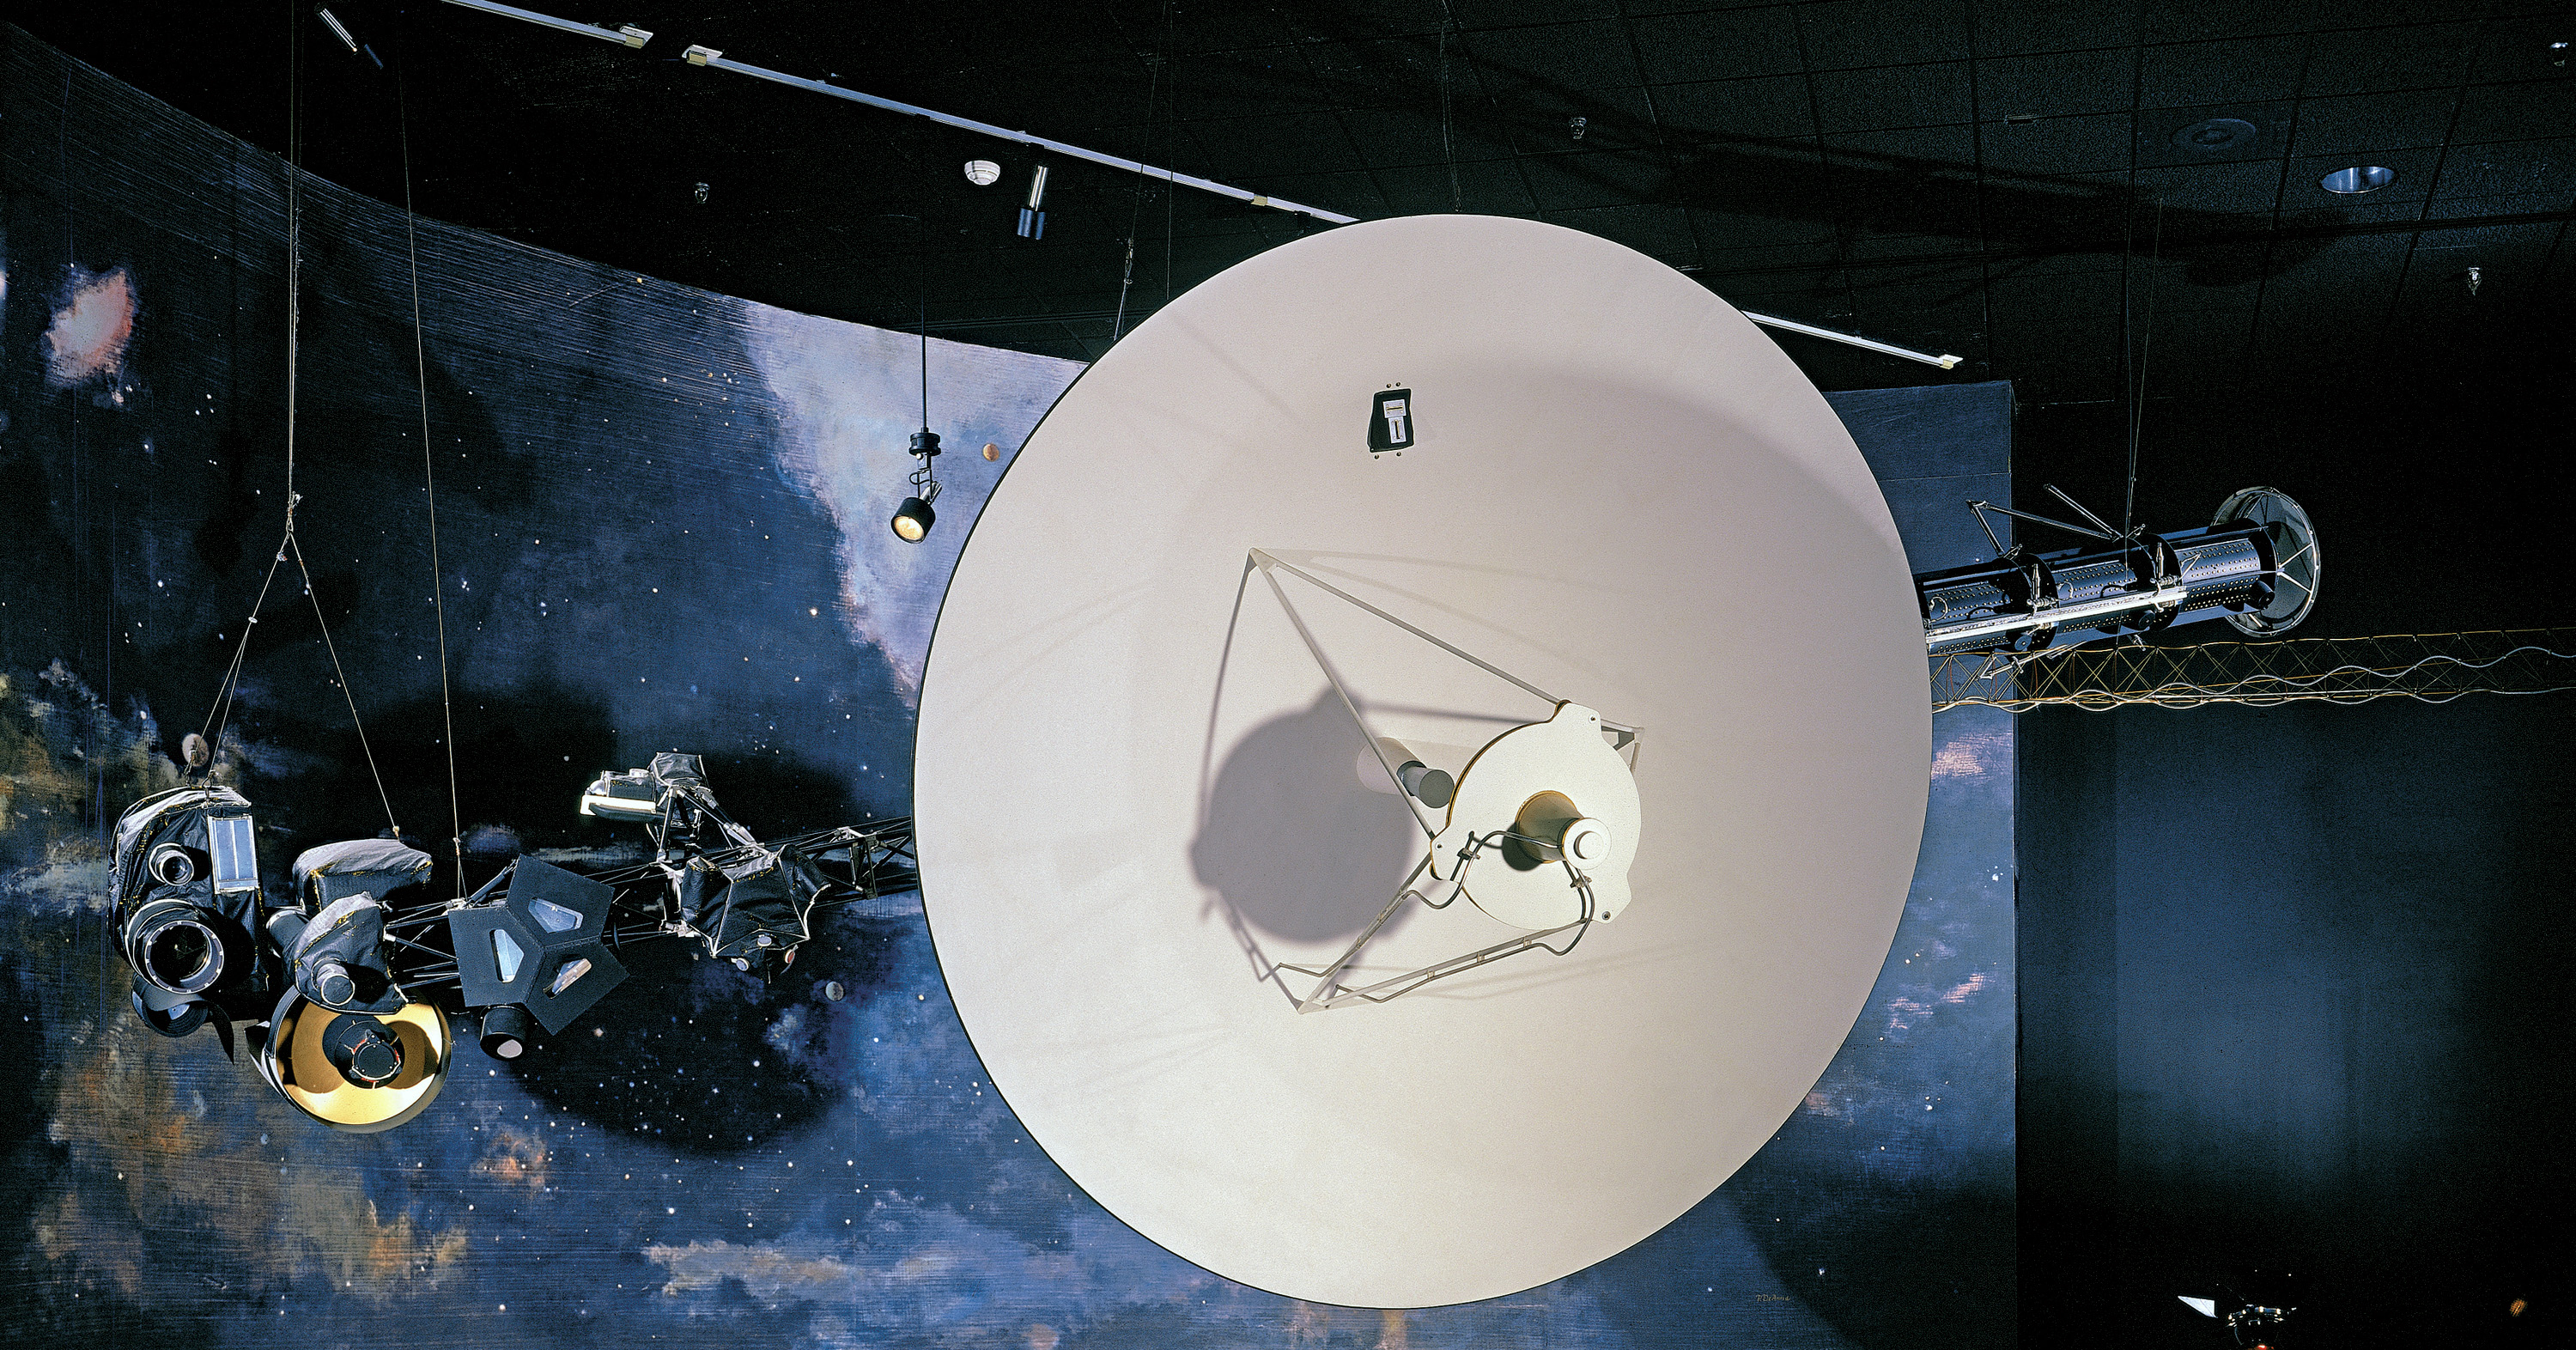 Voyager in Exploring the Planets